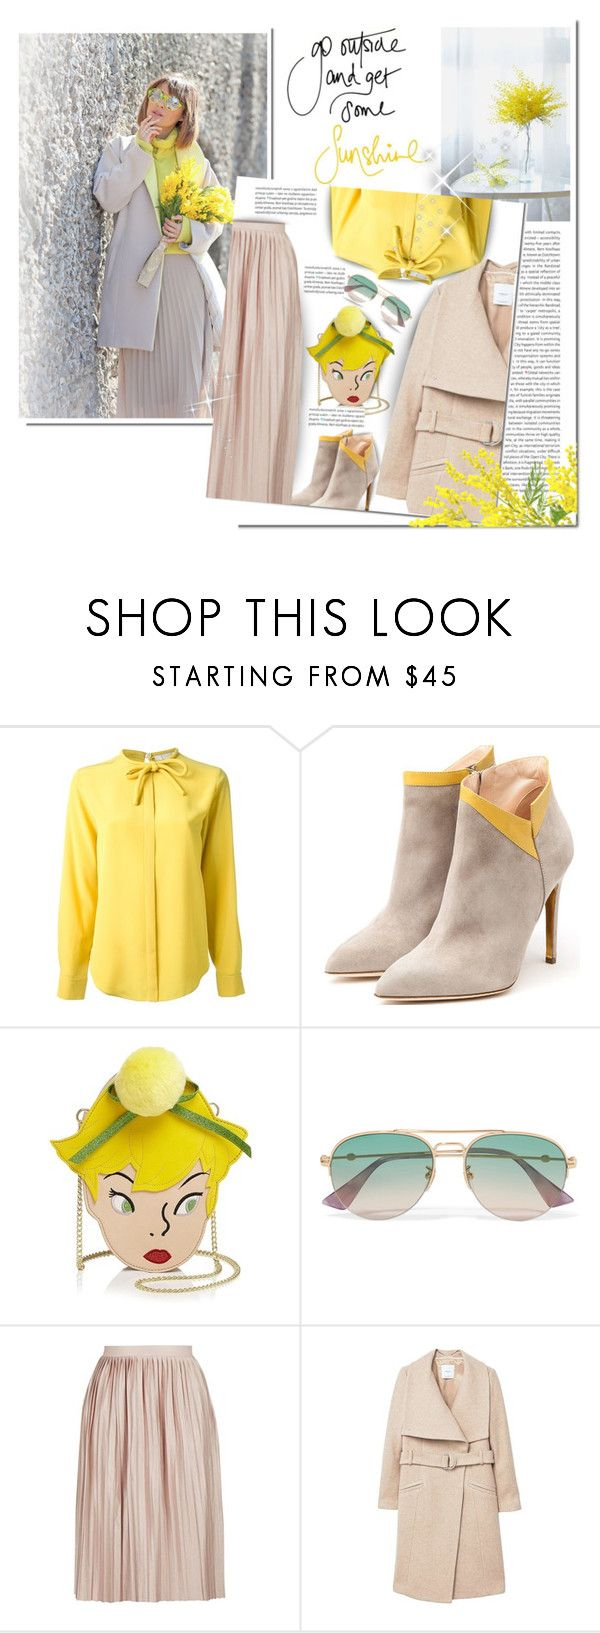 """""""Spring Season 2018 / * Mimosa*"""" by mrswomen ❤ liked on Polyvore featuring Oris, Chloé, Rupert Sanderson, Danielle Nicole, Gucci, Topshop and MANGO"""